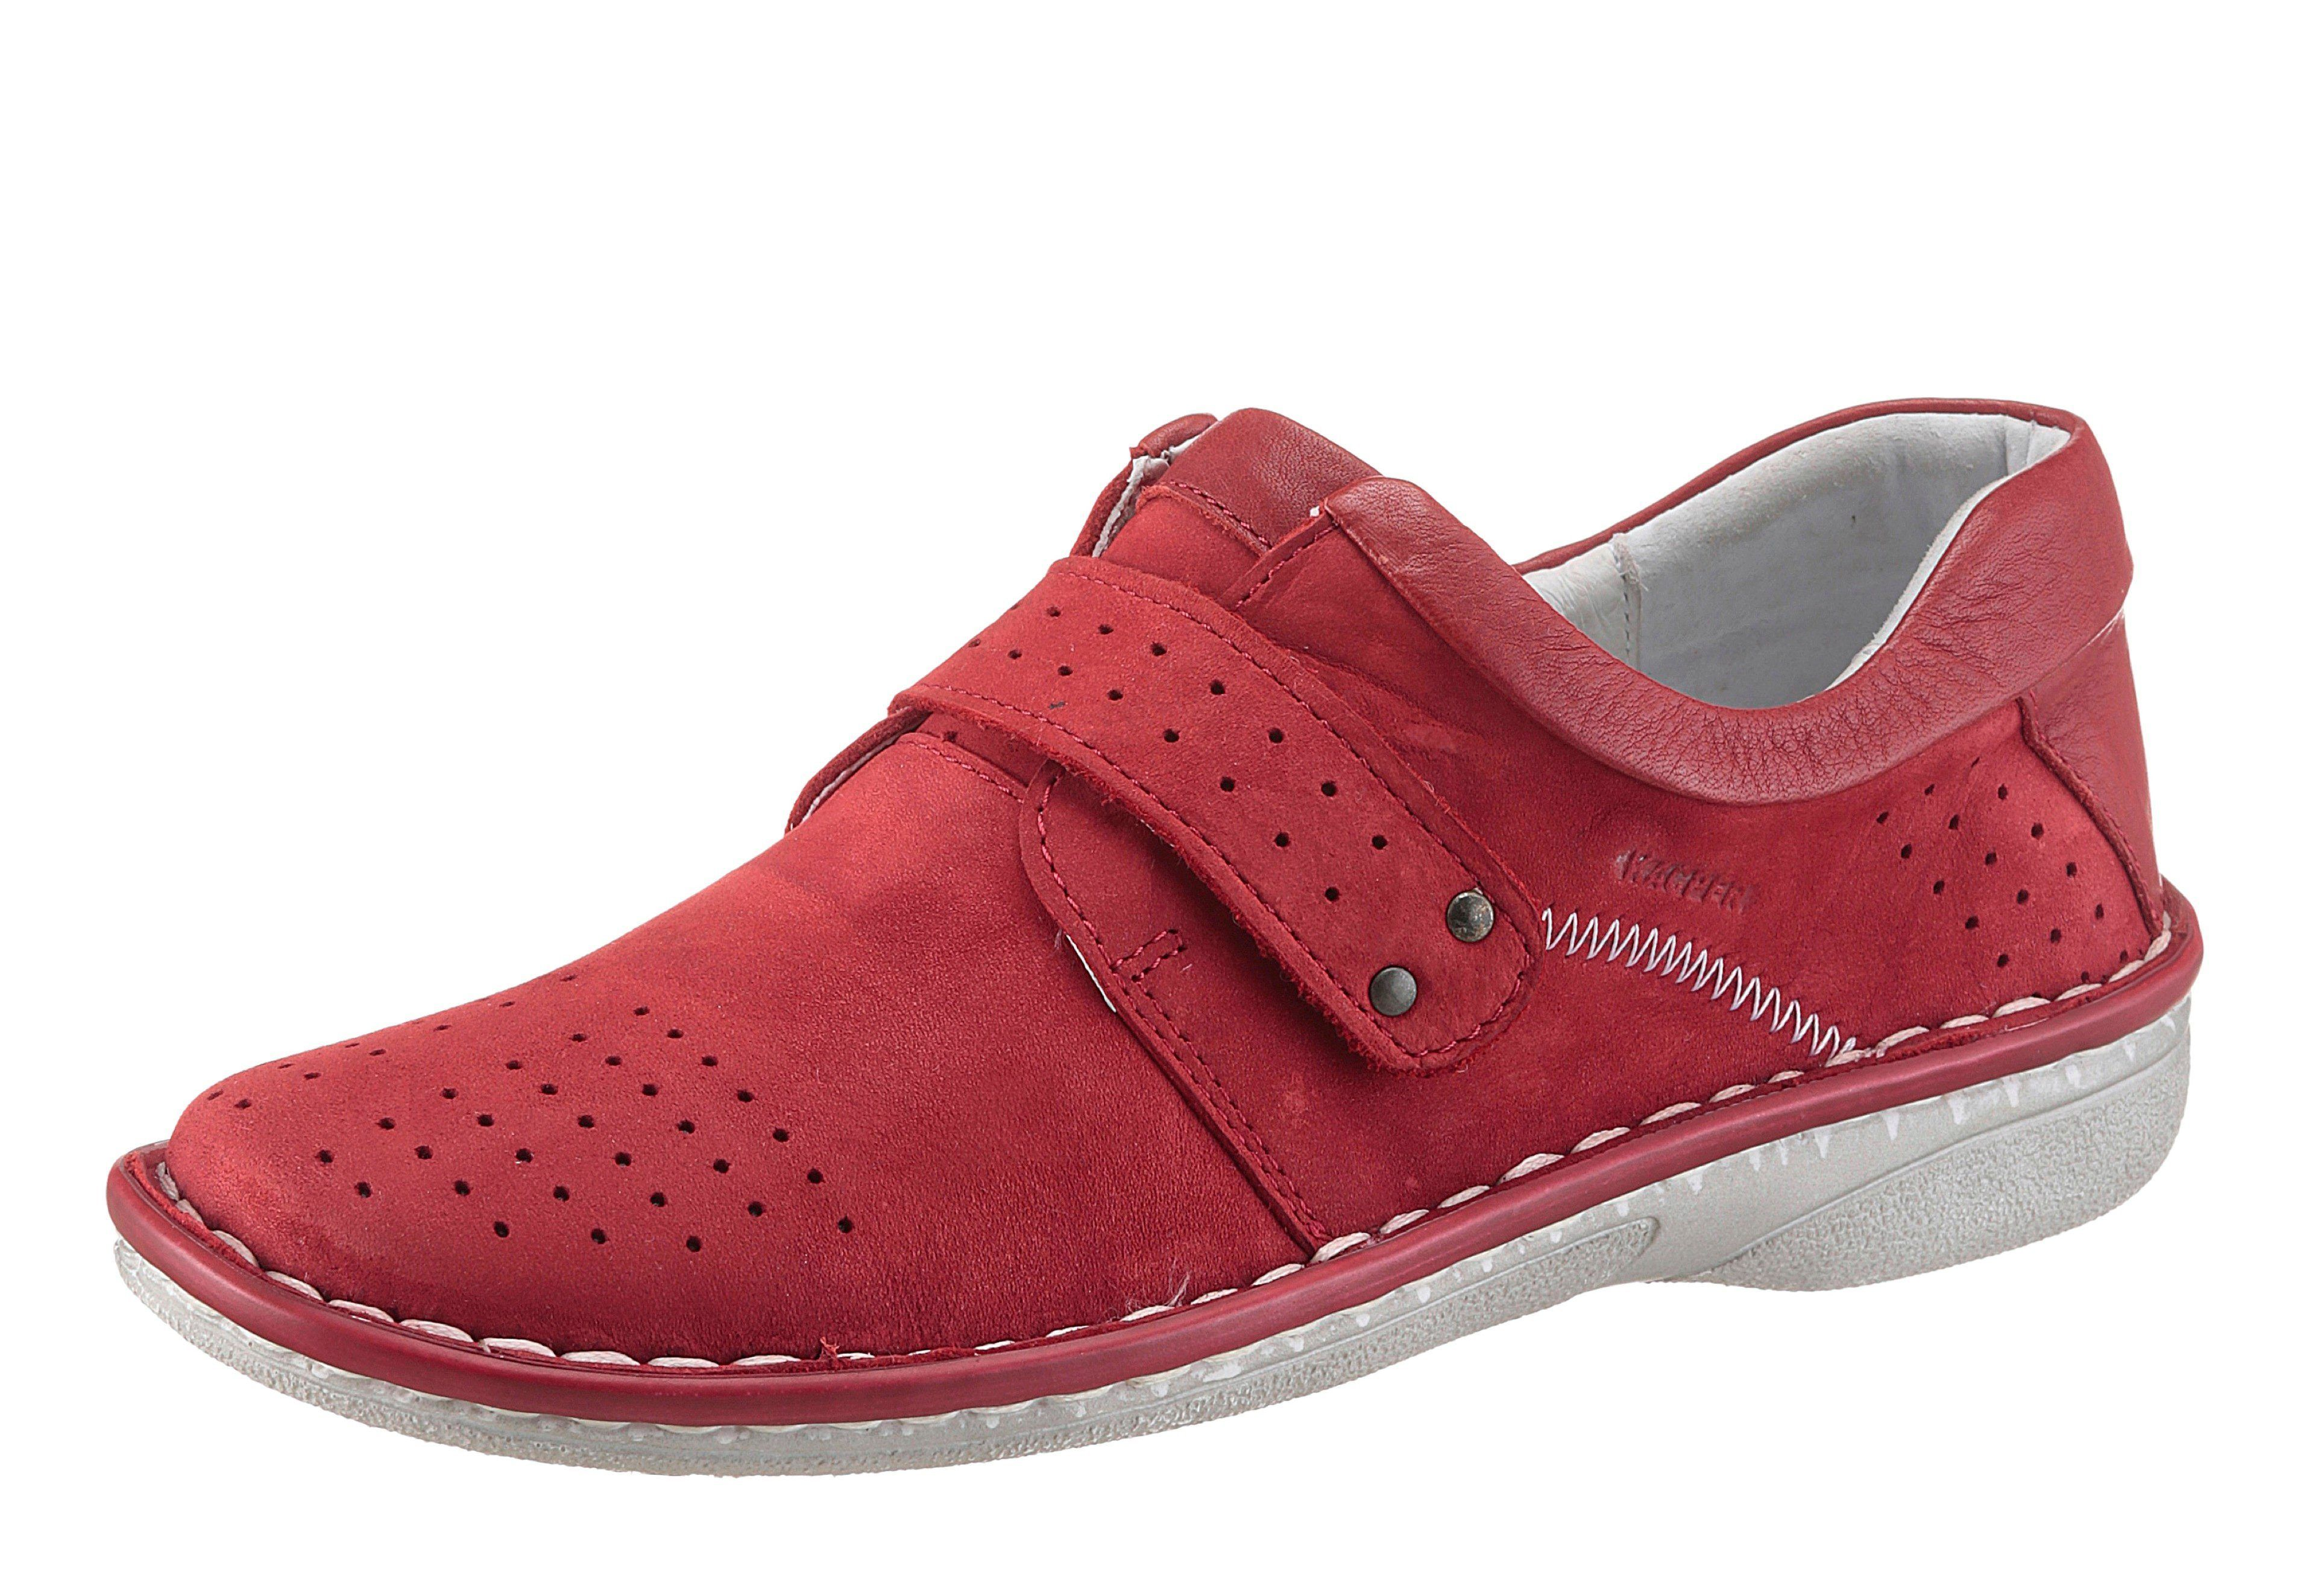 Damen KACPER Slipper, mit Perforation rot | 05902447407273